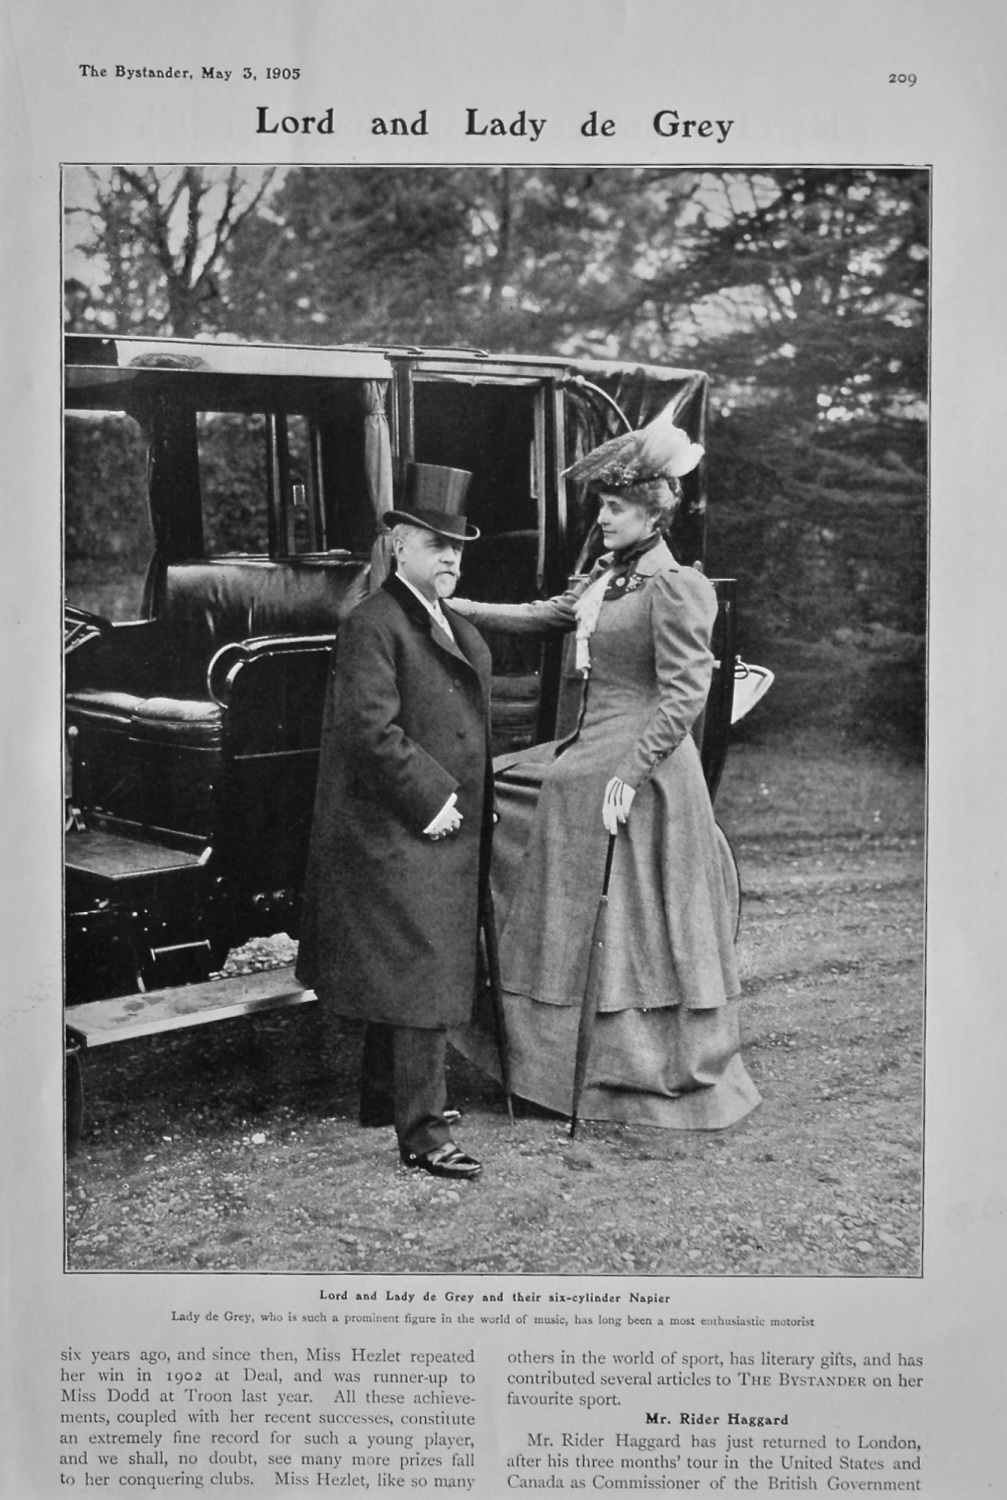 Lord and Lady de Grey and their six-cylinder Napier. 1905